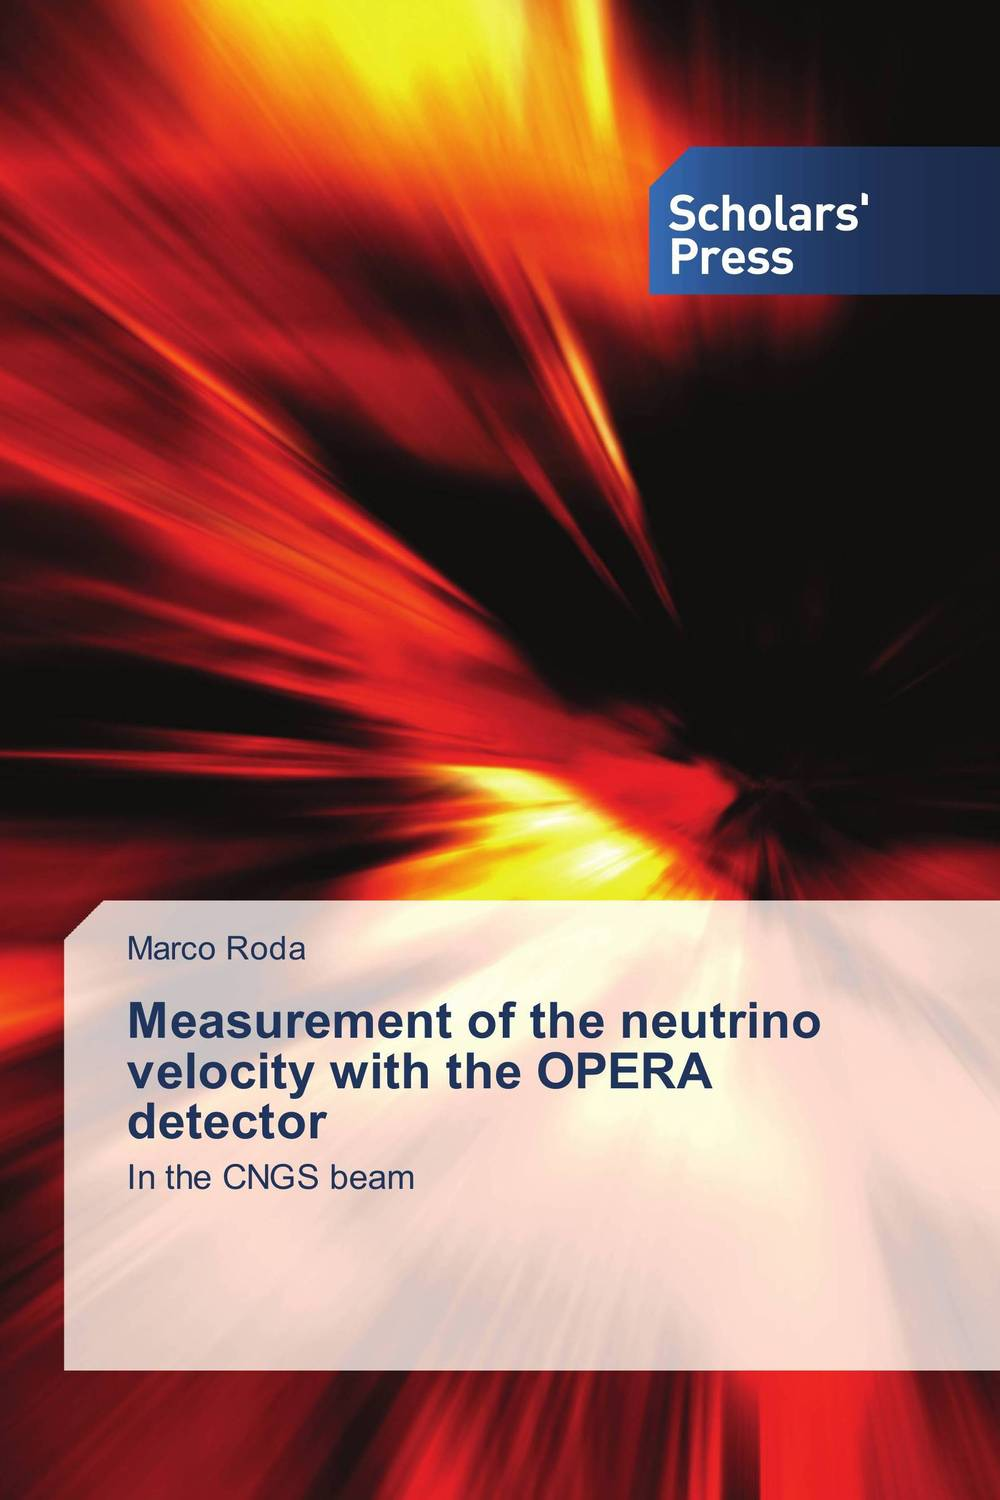 Measurement of the neutrino velocity with the OPERA detector the heir